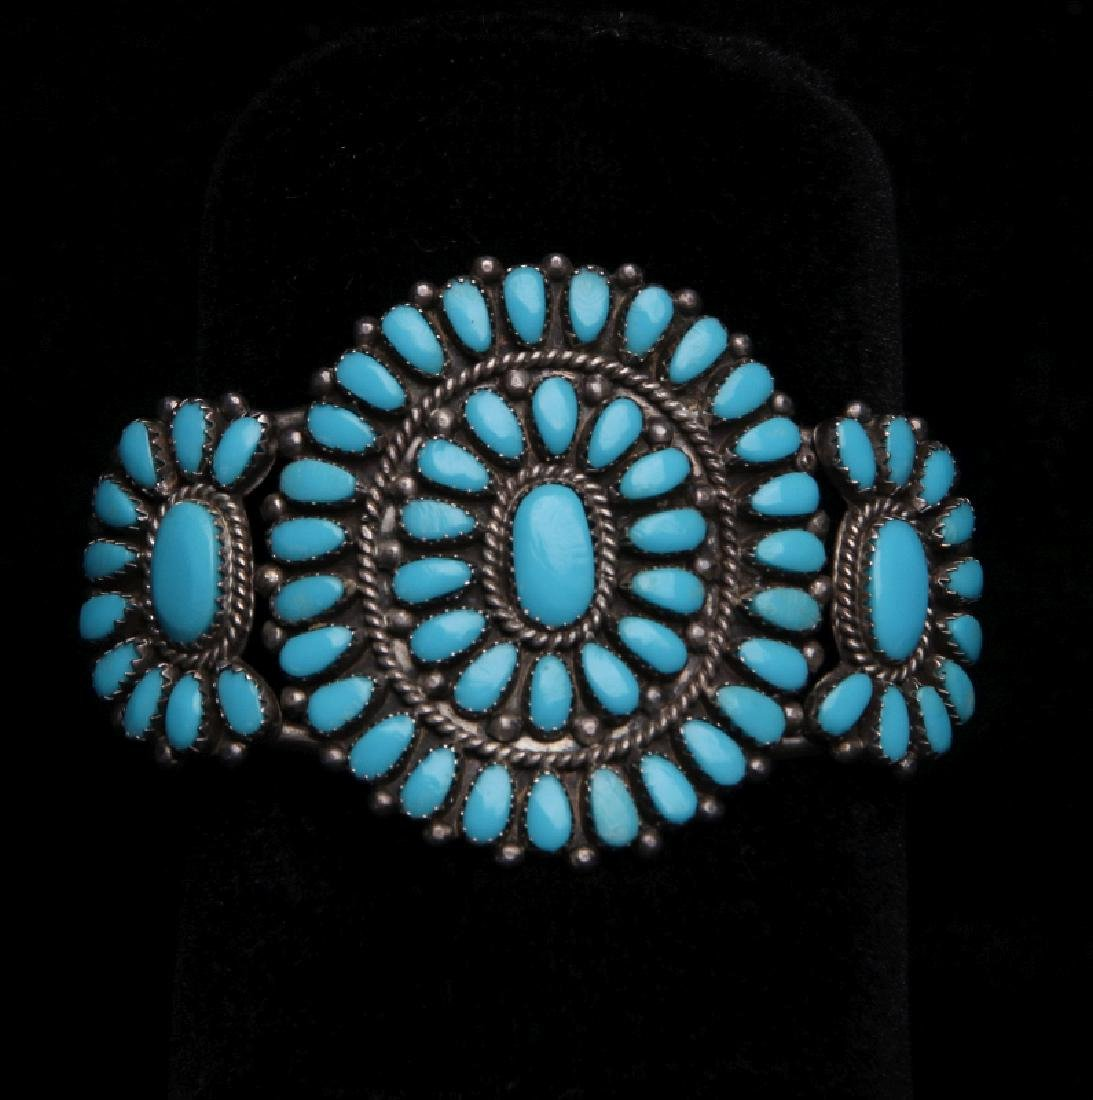 A ZUNI STERLING SILVER AND TURQUOISE CUFF BRACELET